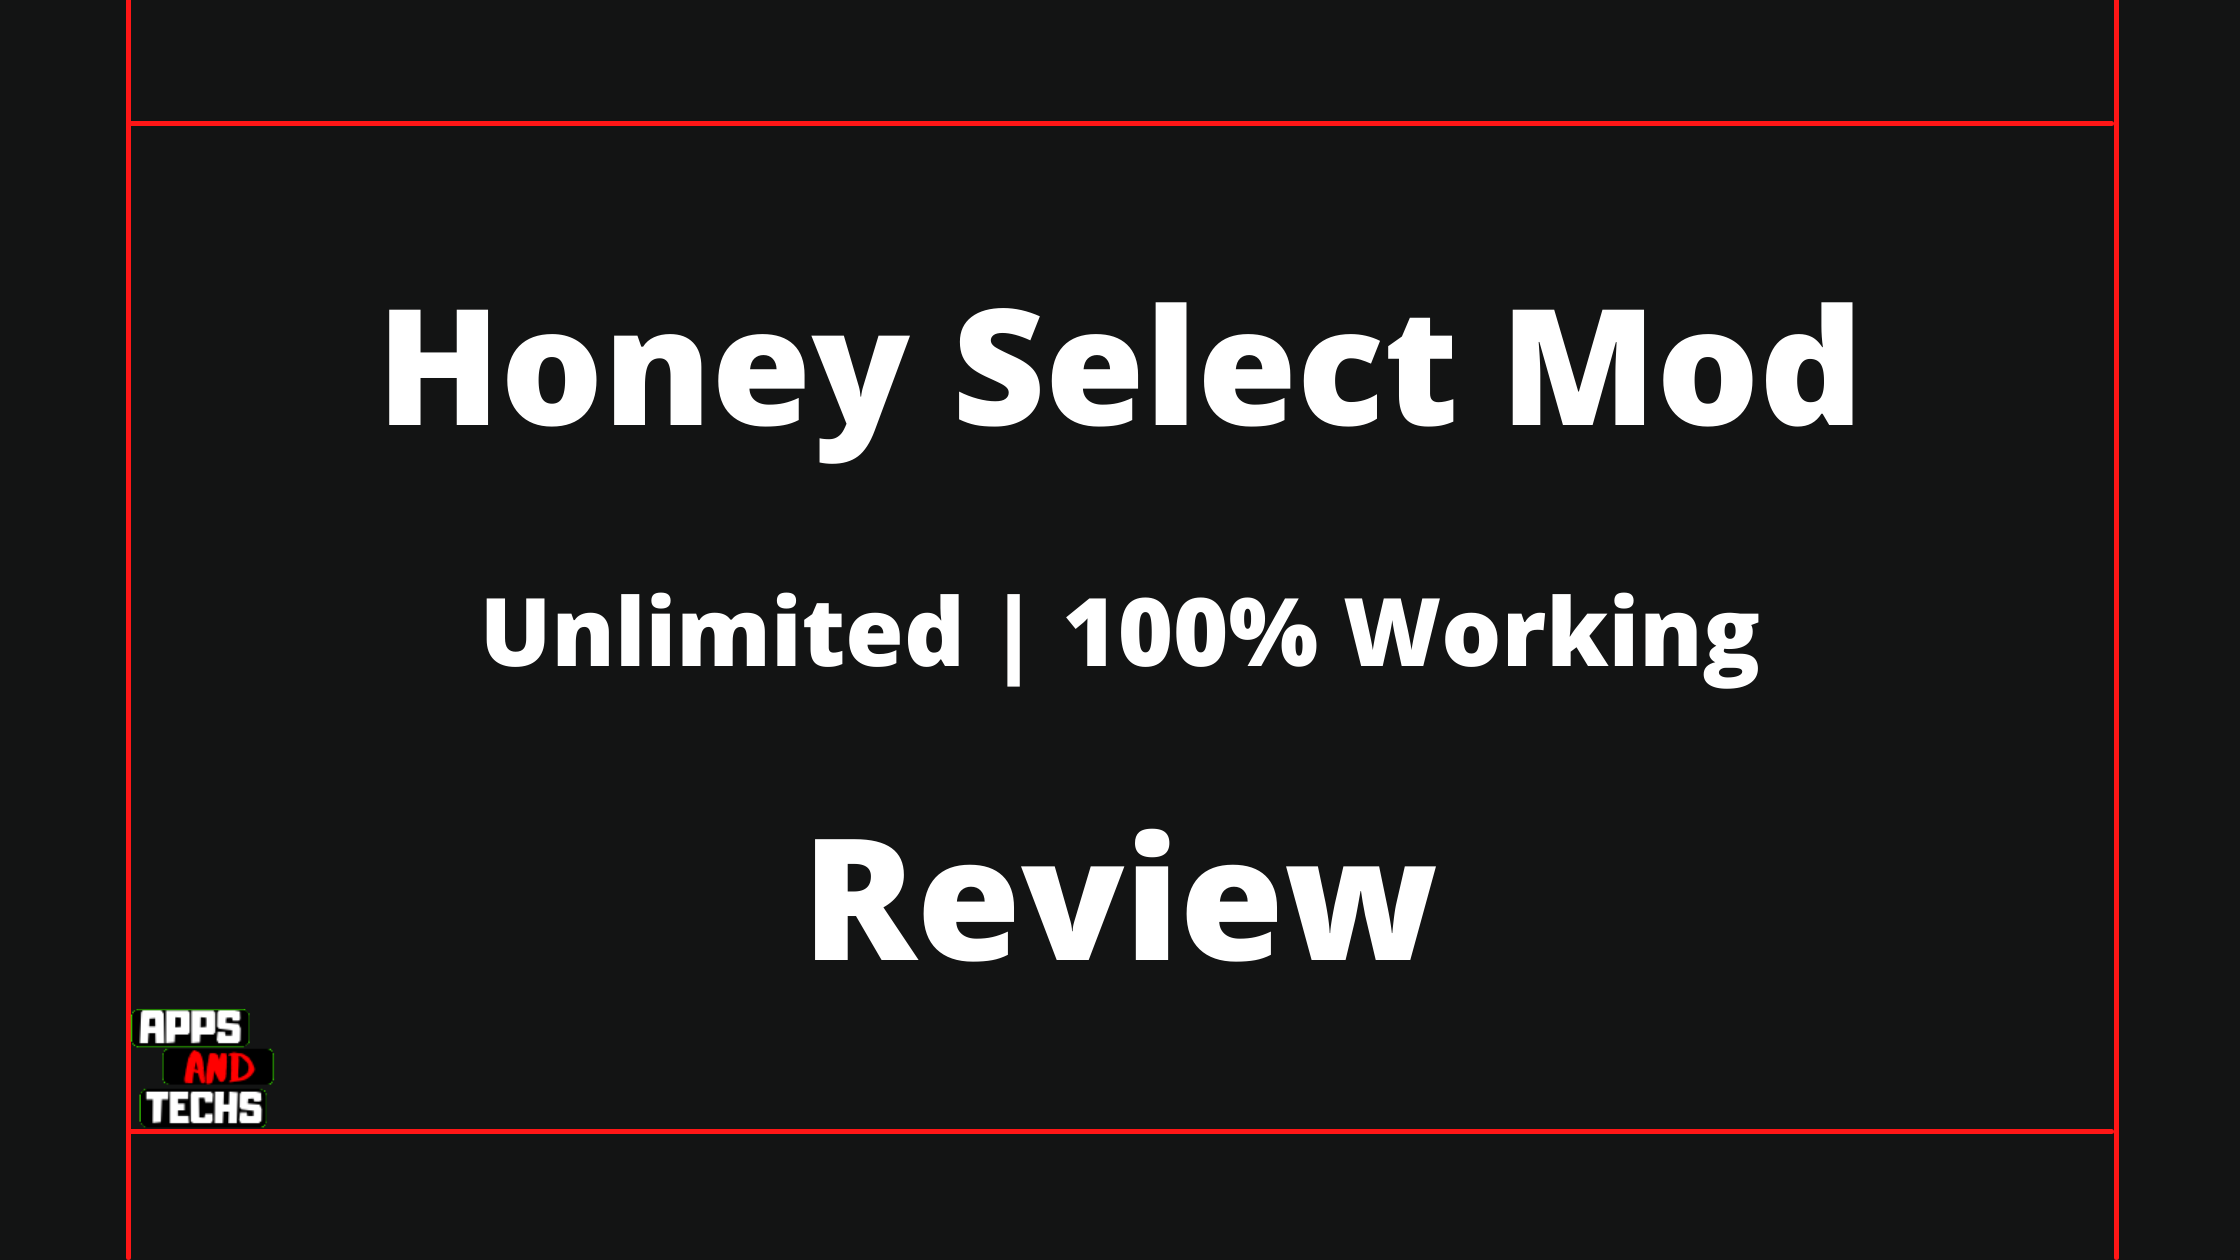 Honey Select Mod | Unlimited | 100% working | Review